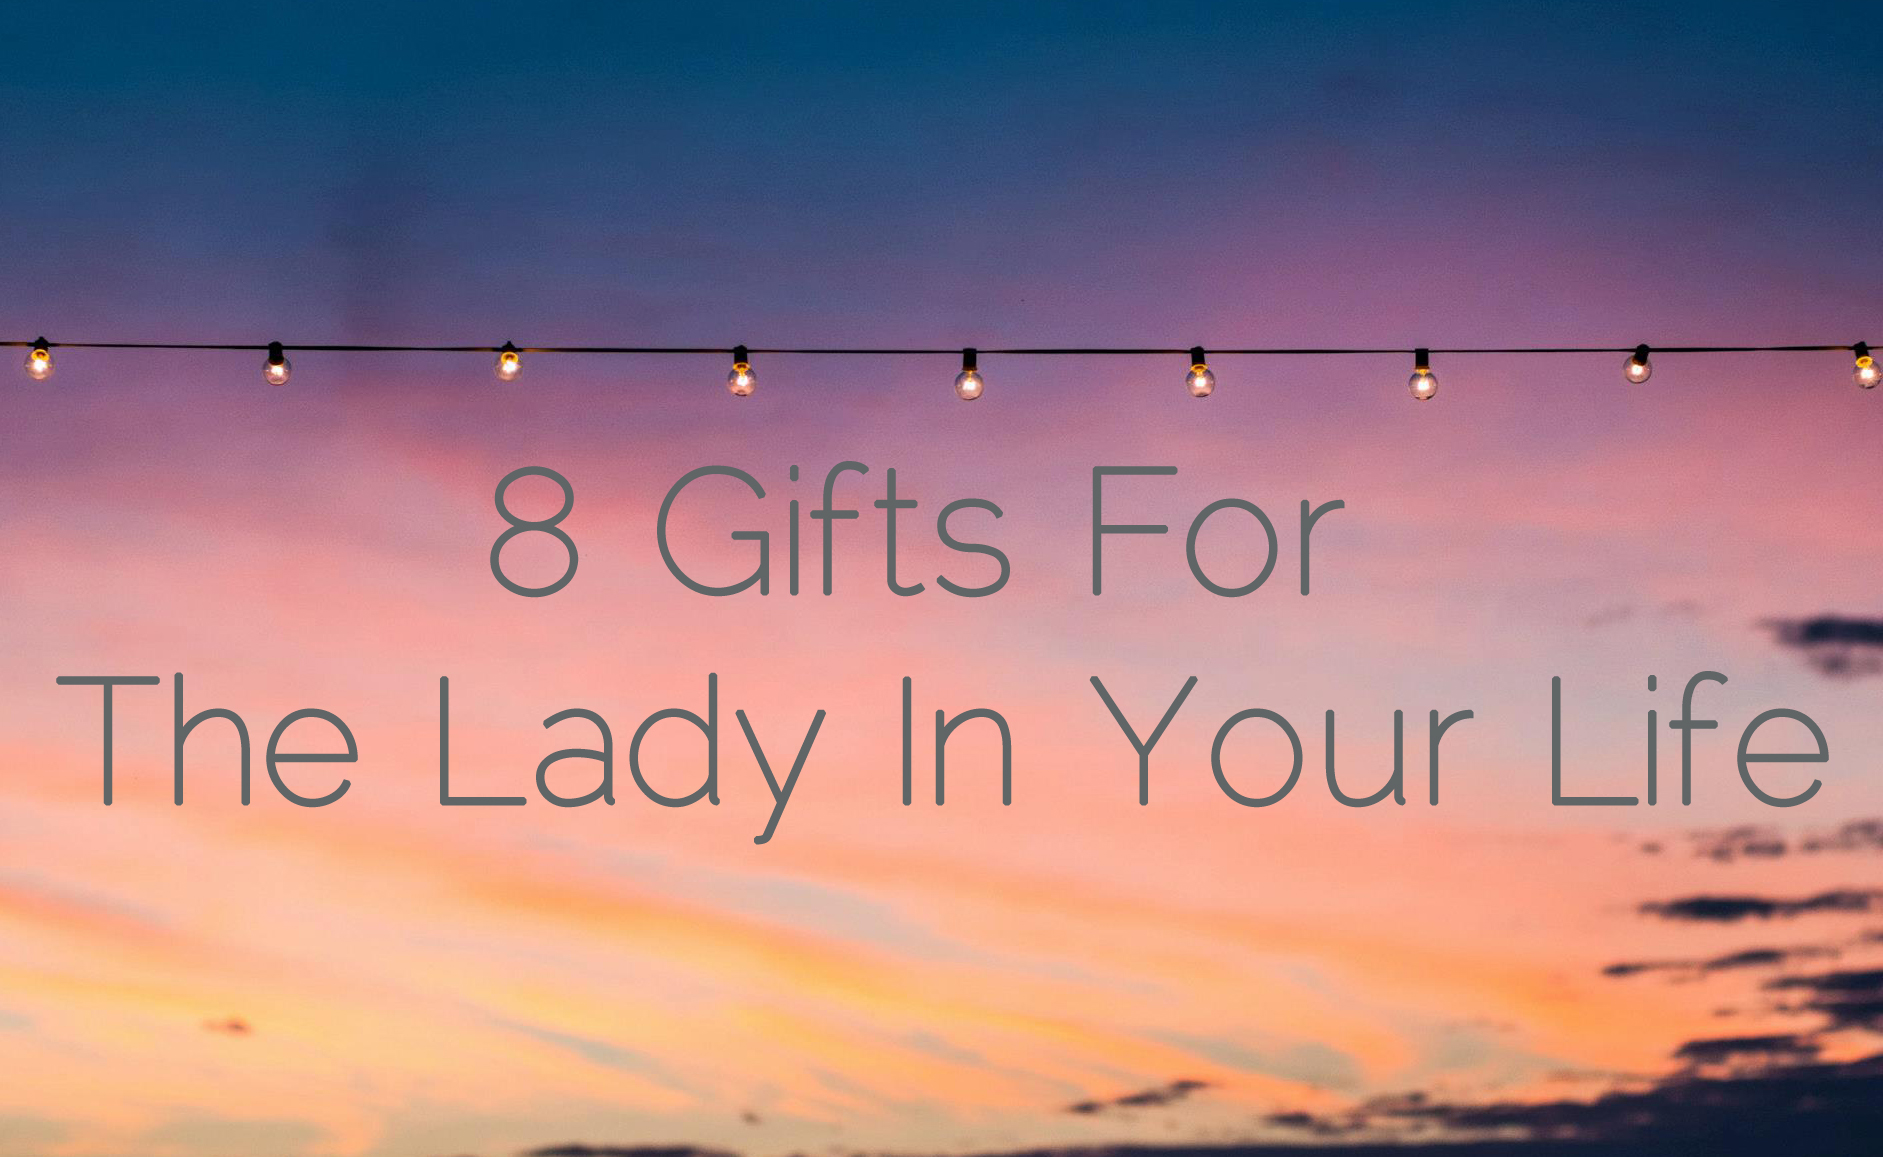 8 Gifts For The Lady In Your Life